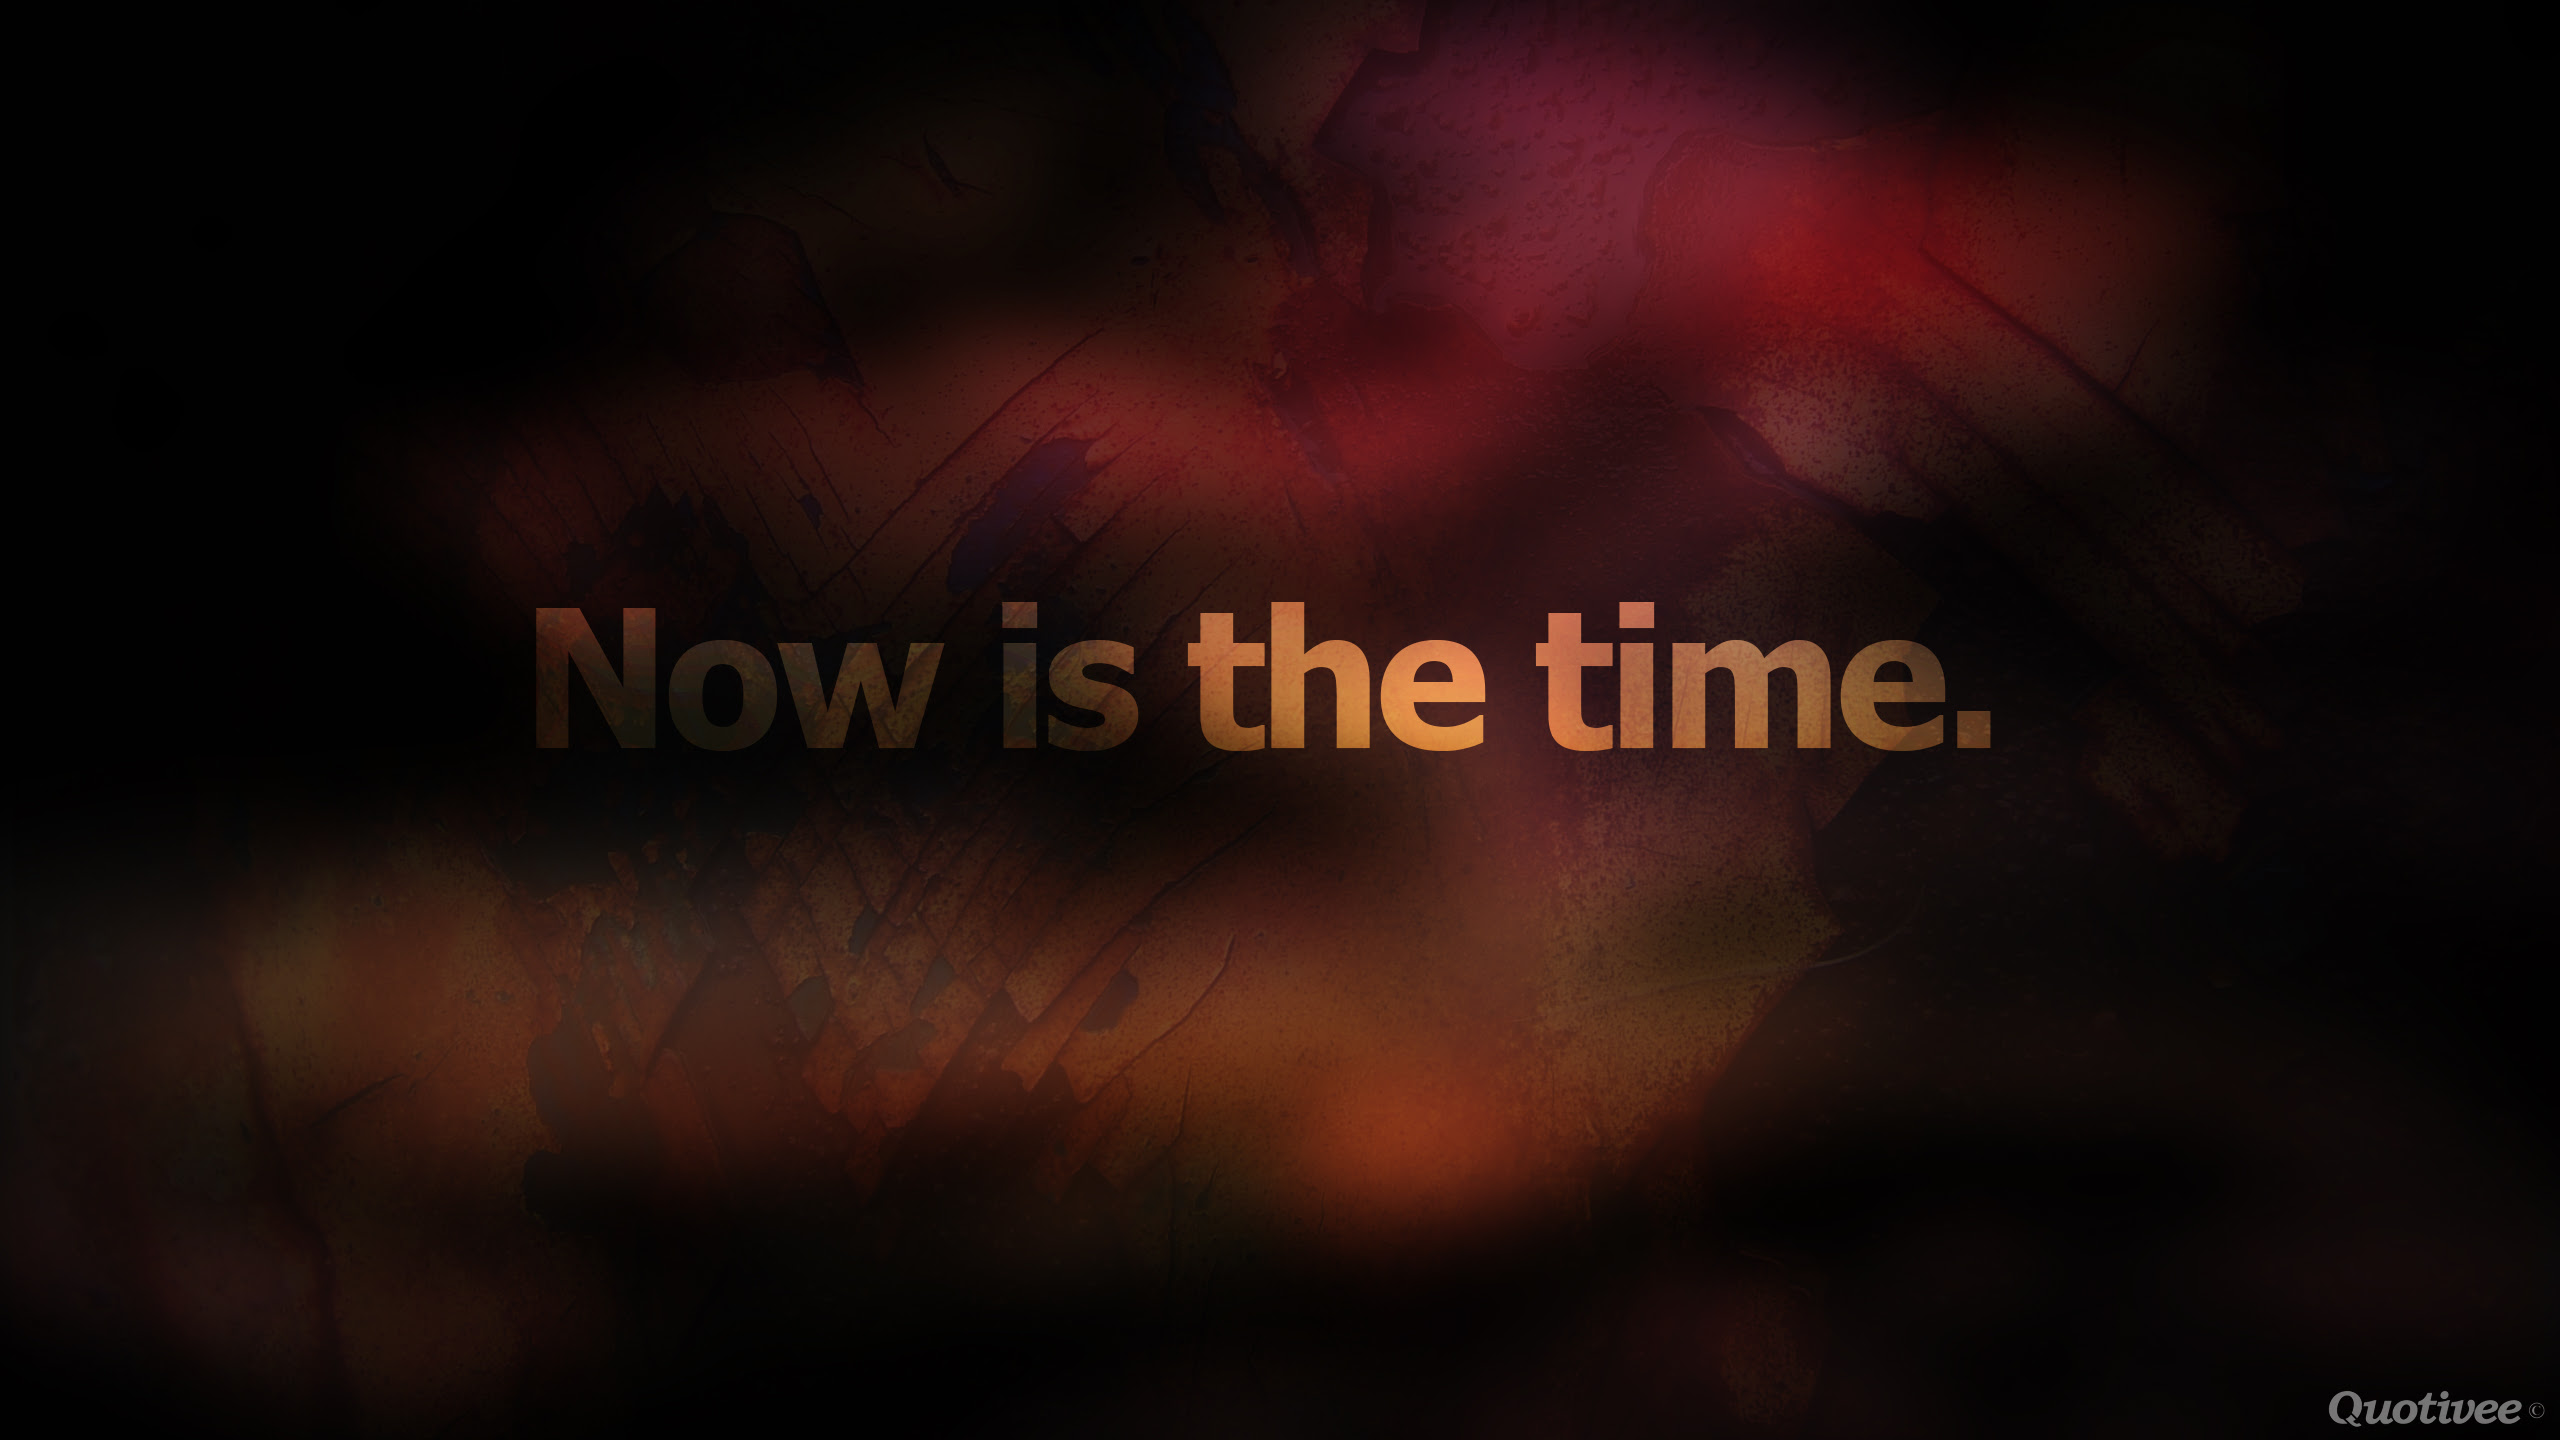 Now Is The Time Inspirational Quotes Quotivee